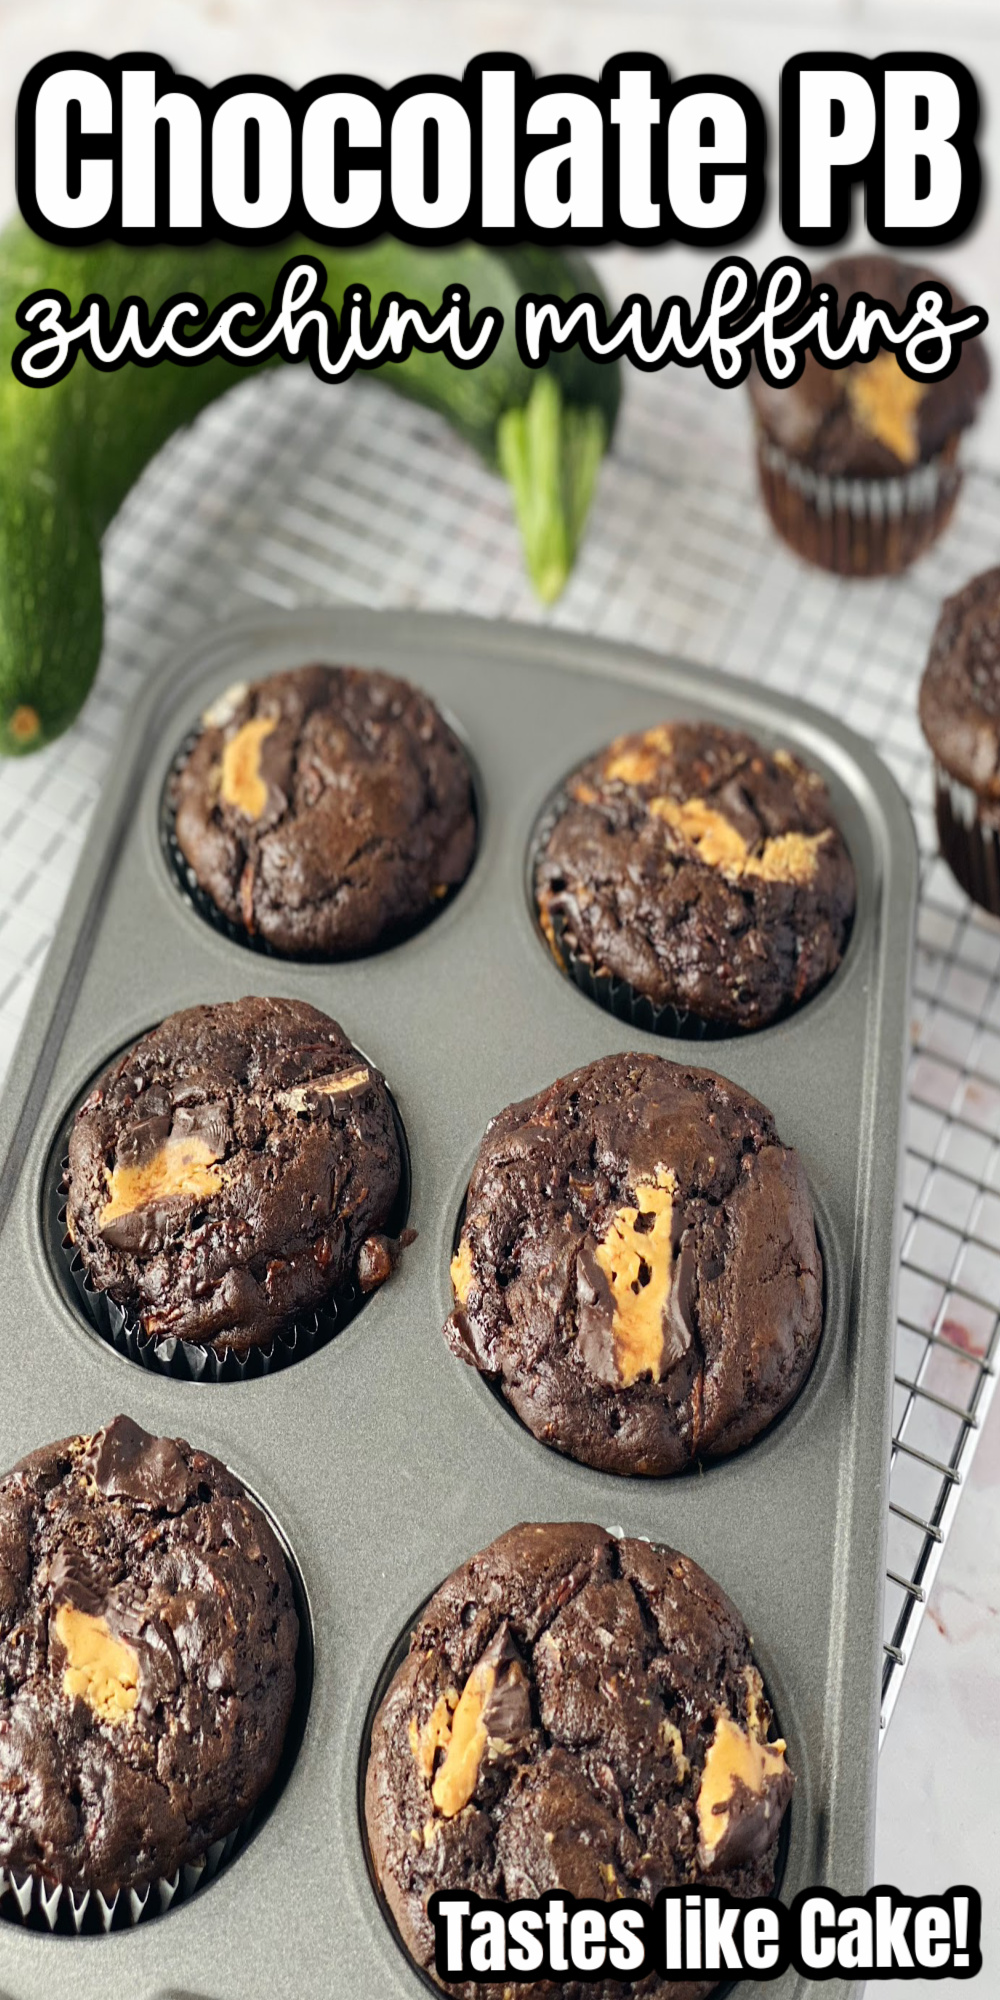 This chocolate peanut butter zucchini bread recipe is so good in muffins or a loaf.